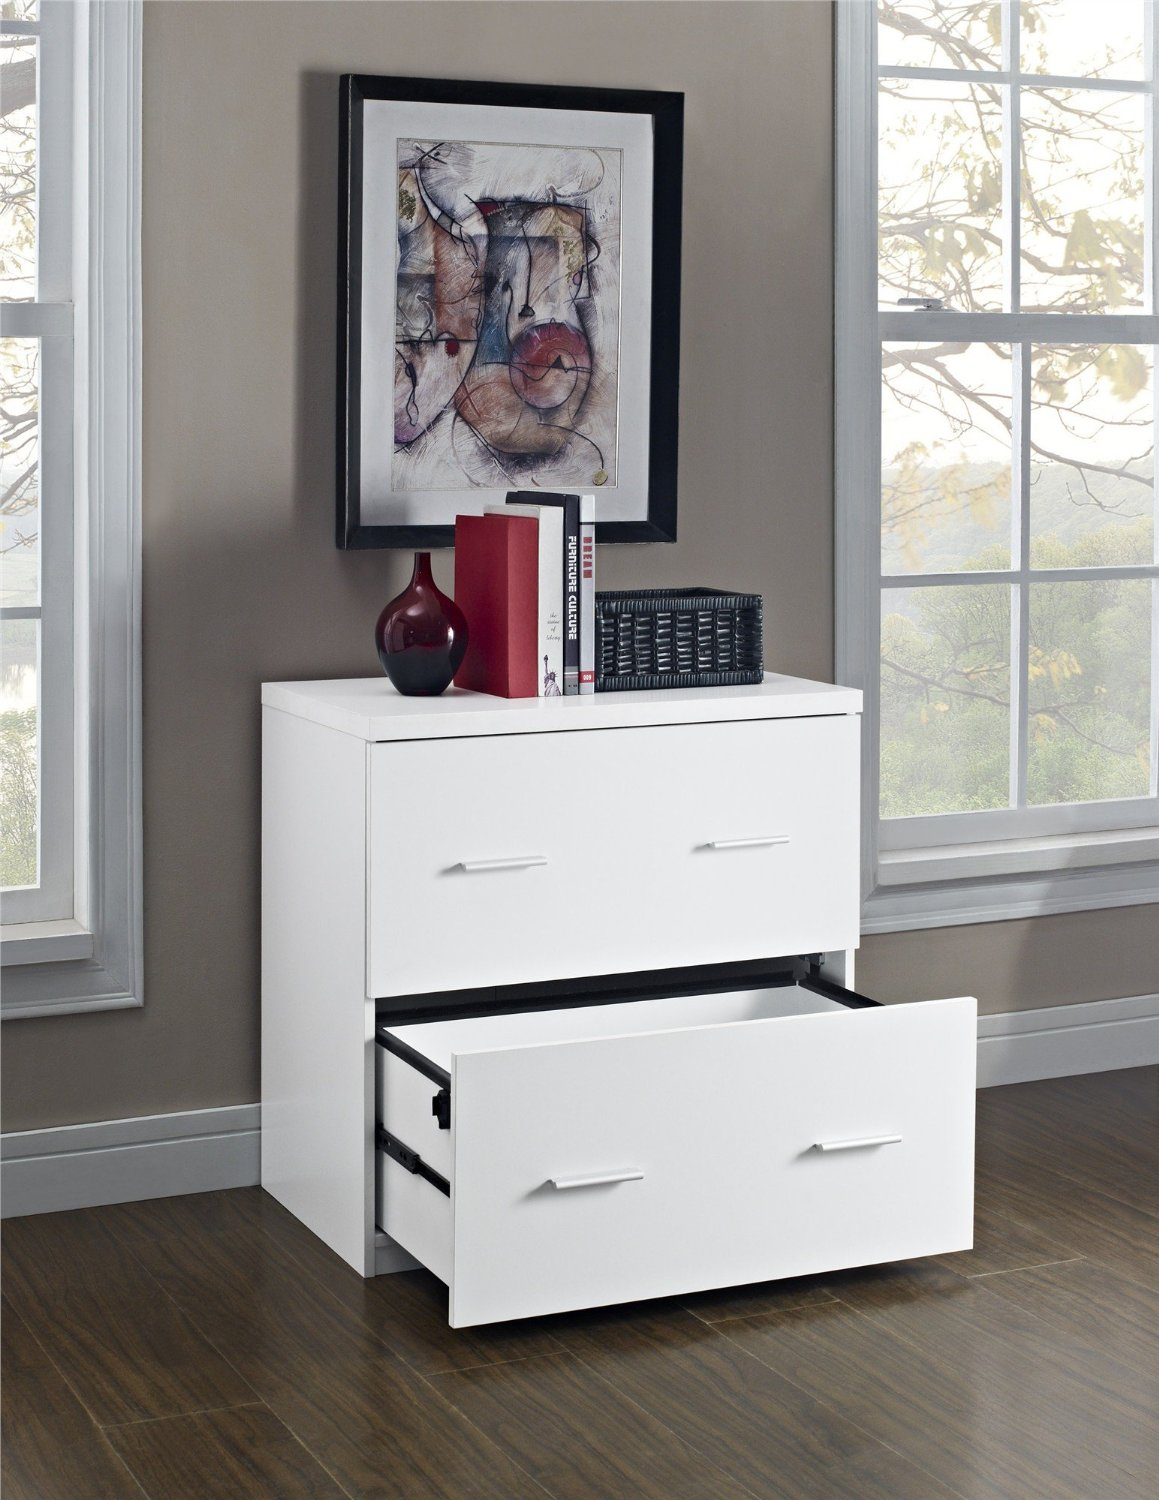 Altra Princeton u2013 White Color Lateral File Cabinet u2013 2 drawers & Top 10 Best Selling White Filing Cabinets and Carts